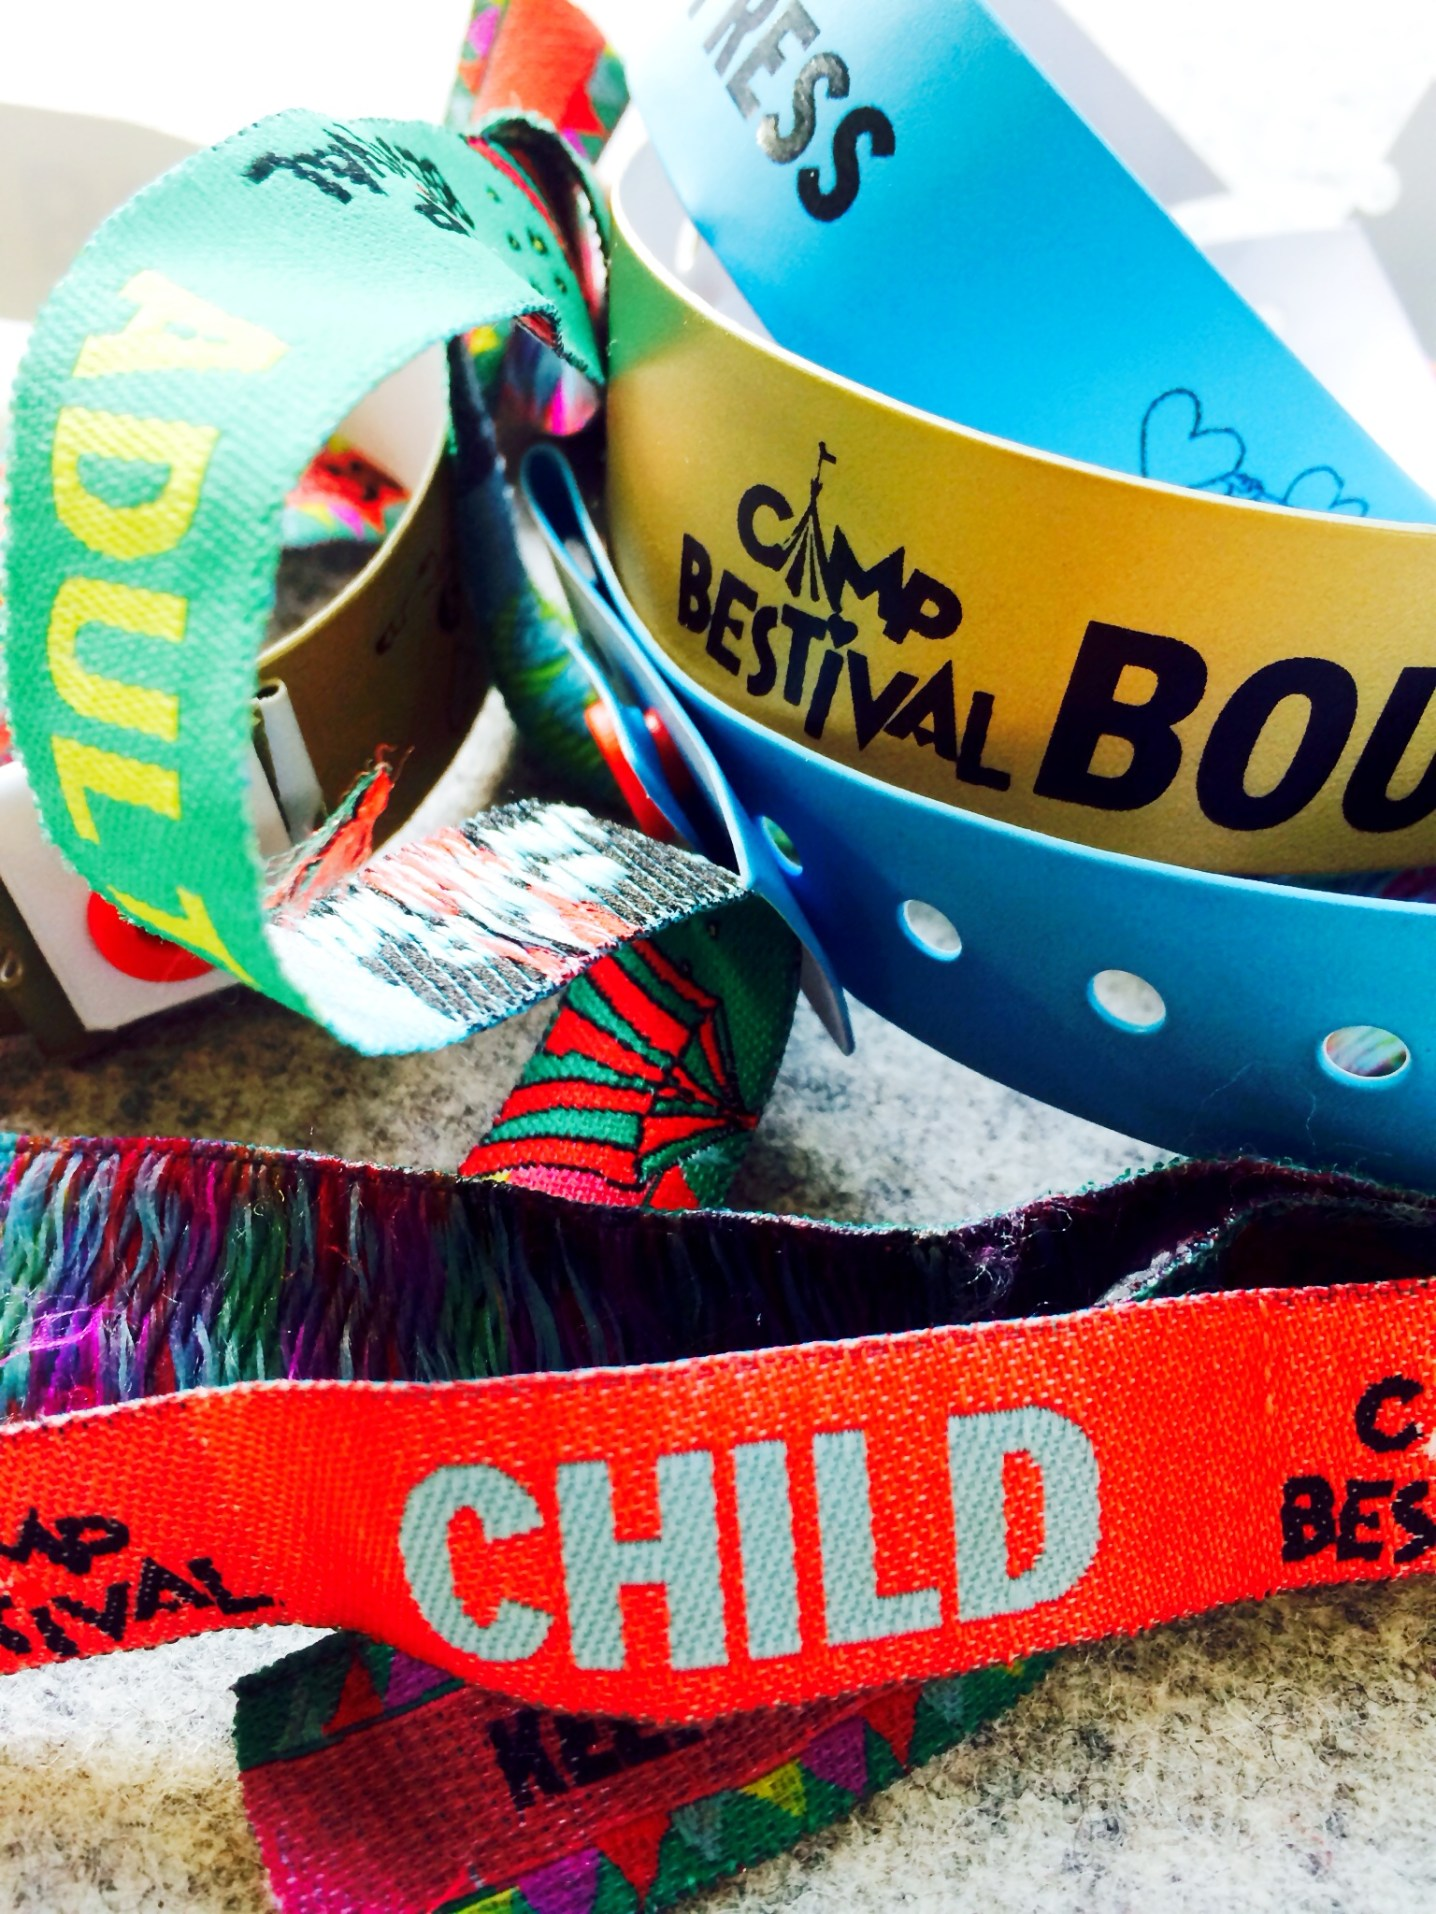 camp bestival is all over